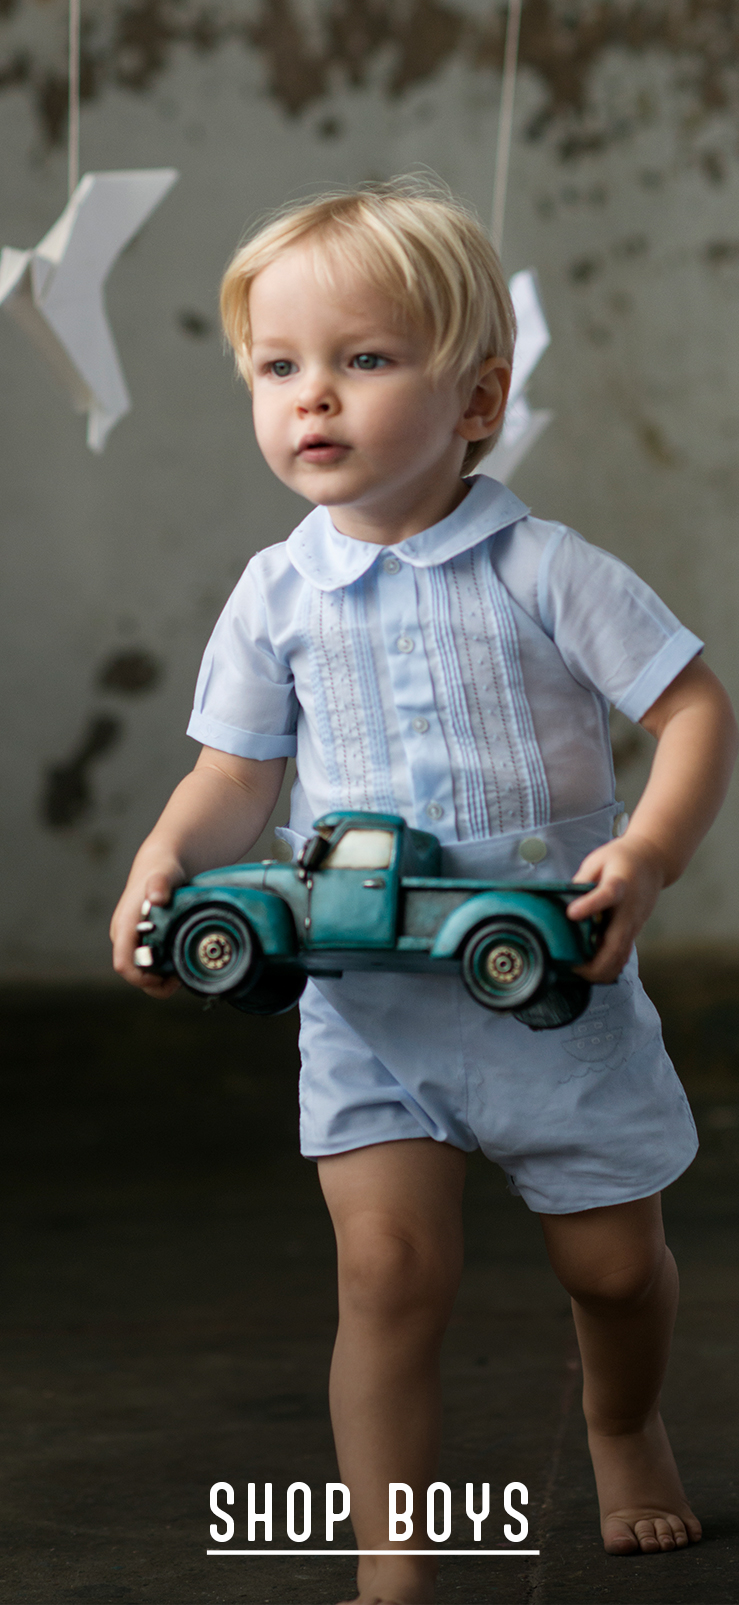 Find adorable boys' clothes in casual and formal styles at Brooks Brothers. Our impressive boys' clothing store includes premium dress shirts, blazers, polos, sports shirts, .